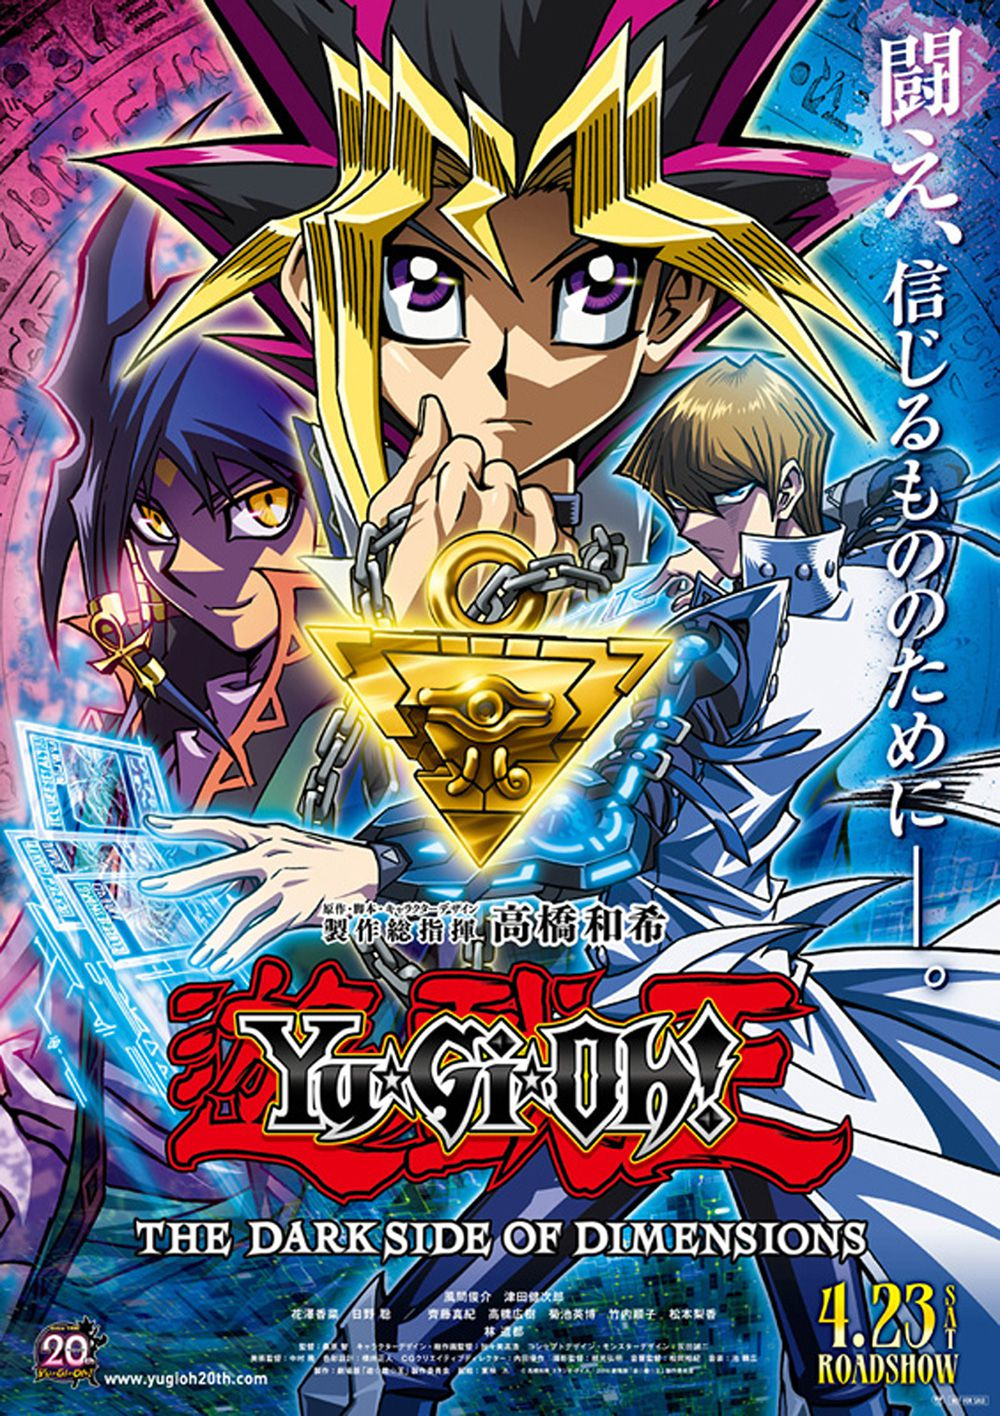 Yu-Gi-Oh!-The-Dark-Side-of-Dimensions-Visual-02